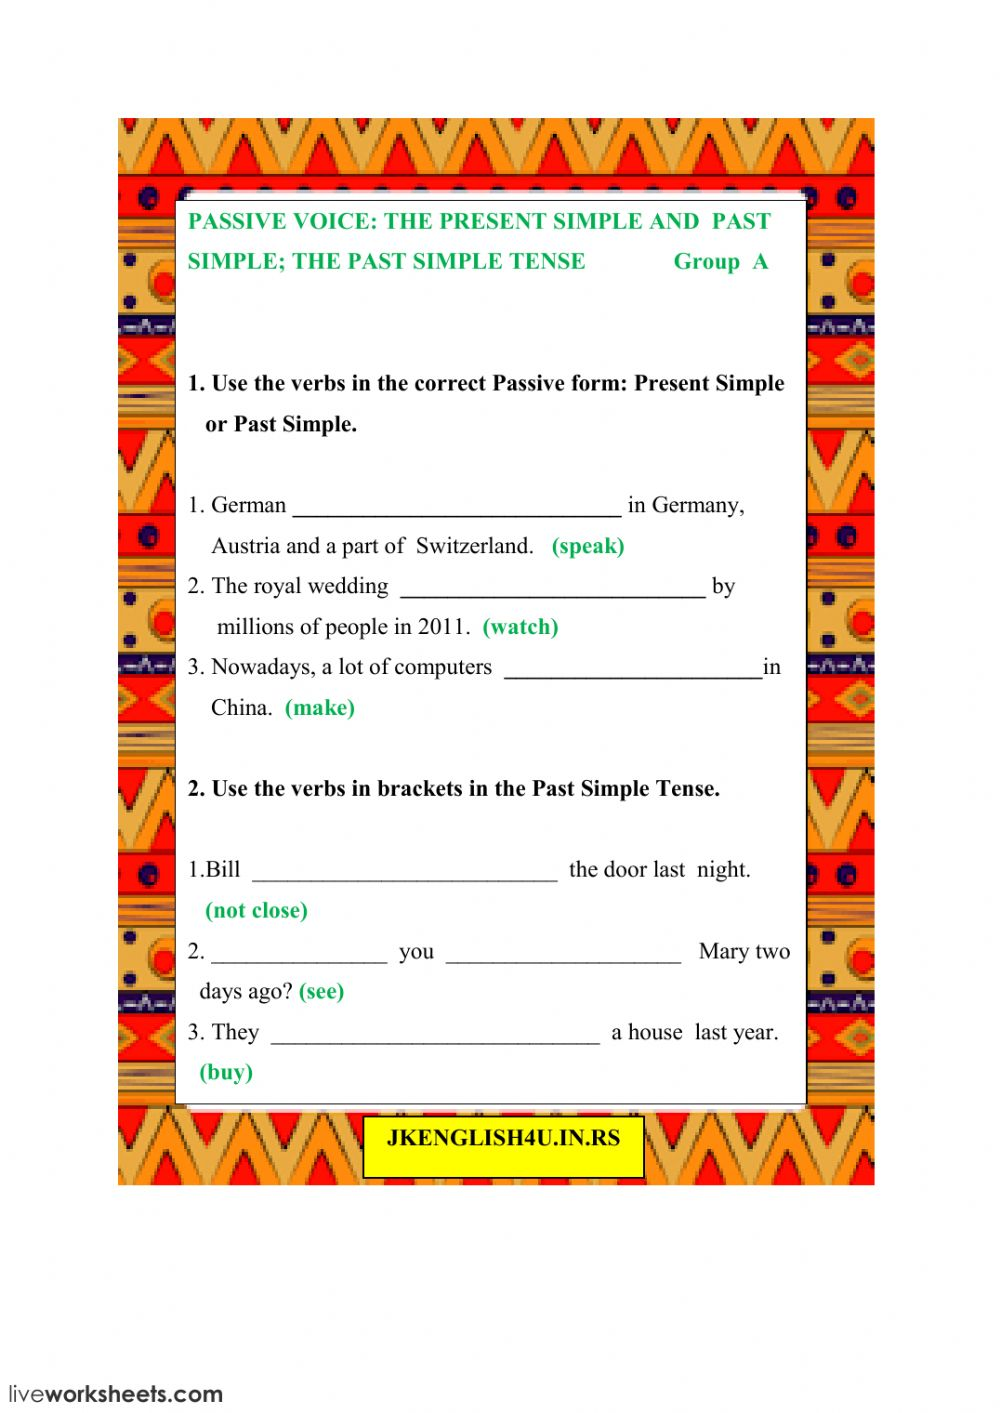 The Passive Voice Present And Past The Past Simple Tense Group A